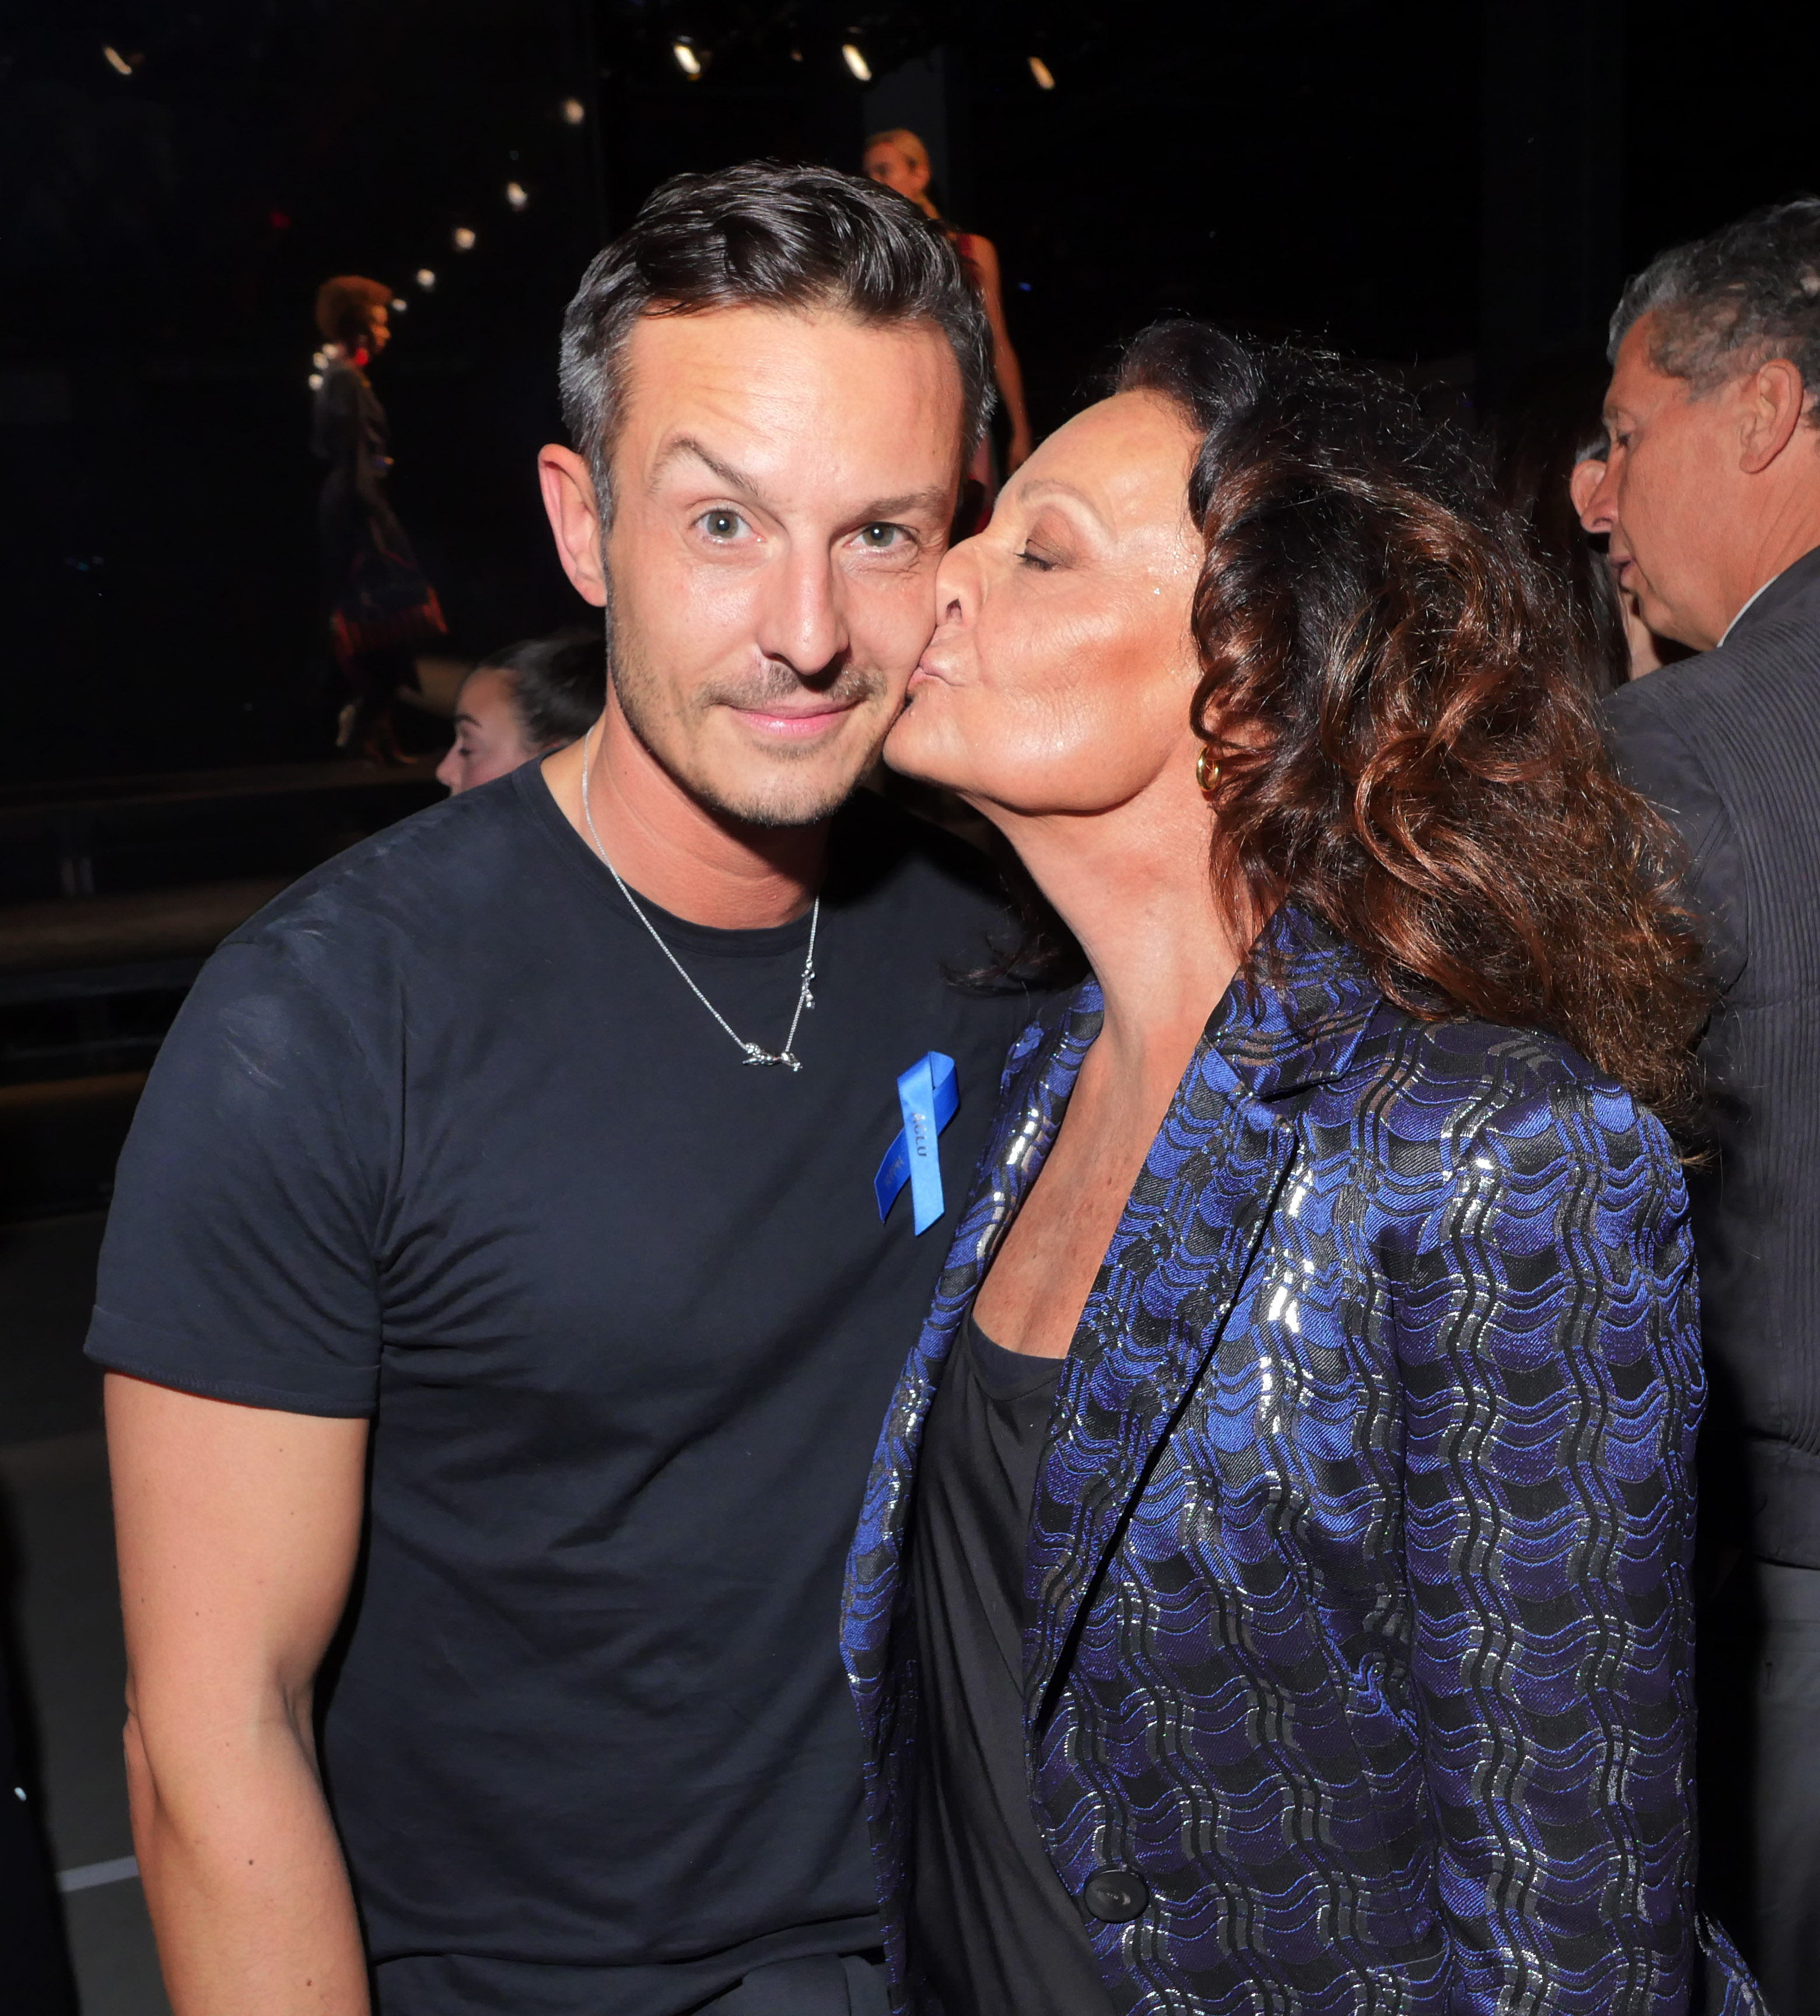 Jonathan Saunders and Diane von Furstenberg in the front rowDiane Von Furstenberg presentation, Front Row, Spring Summer 2018, New York Fashion Week, USA - 10 Sep 2017